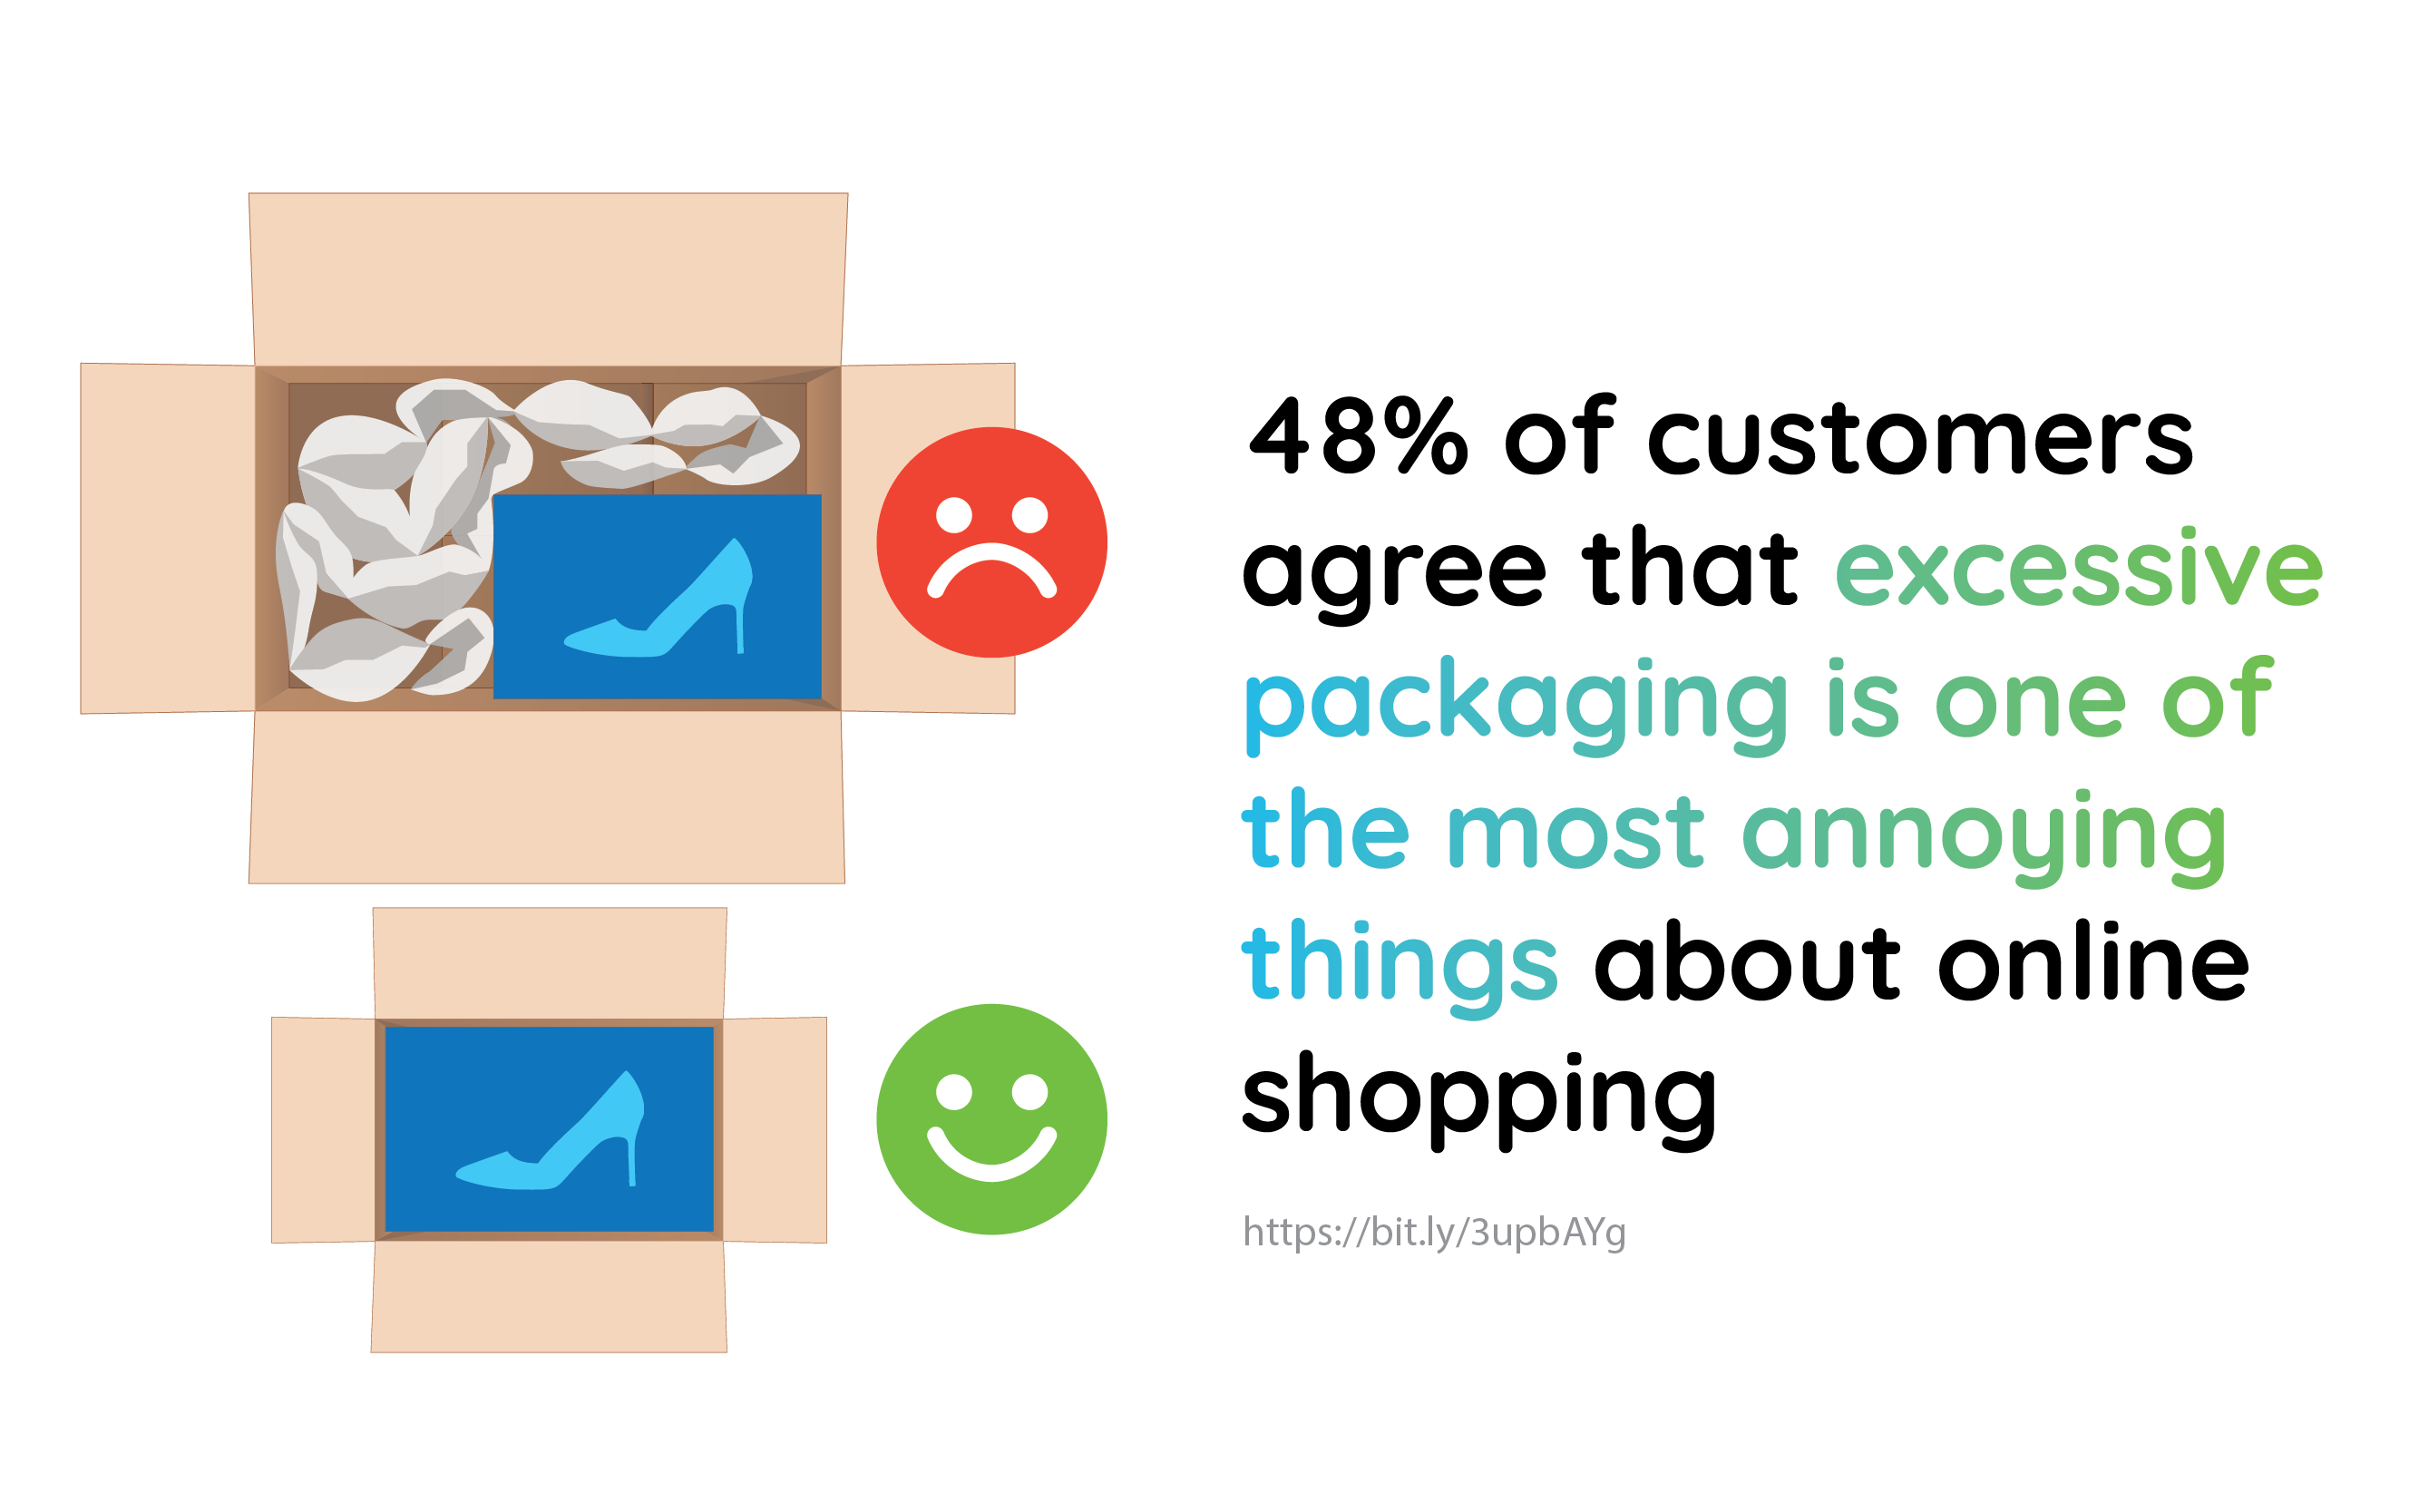 48% of customers agree that excessive packaging is one of the most annoying things about online shopping